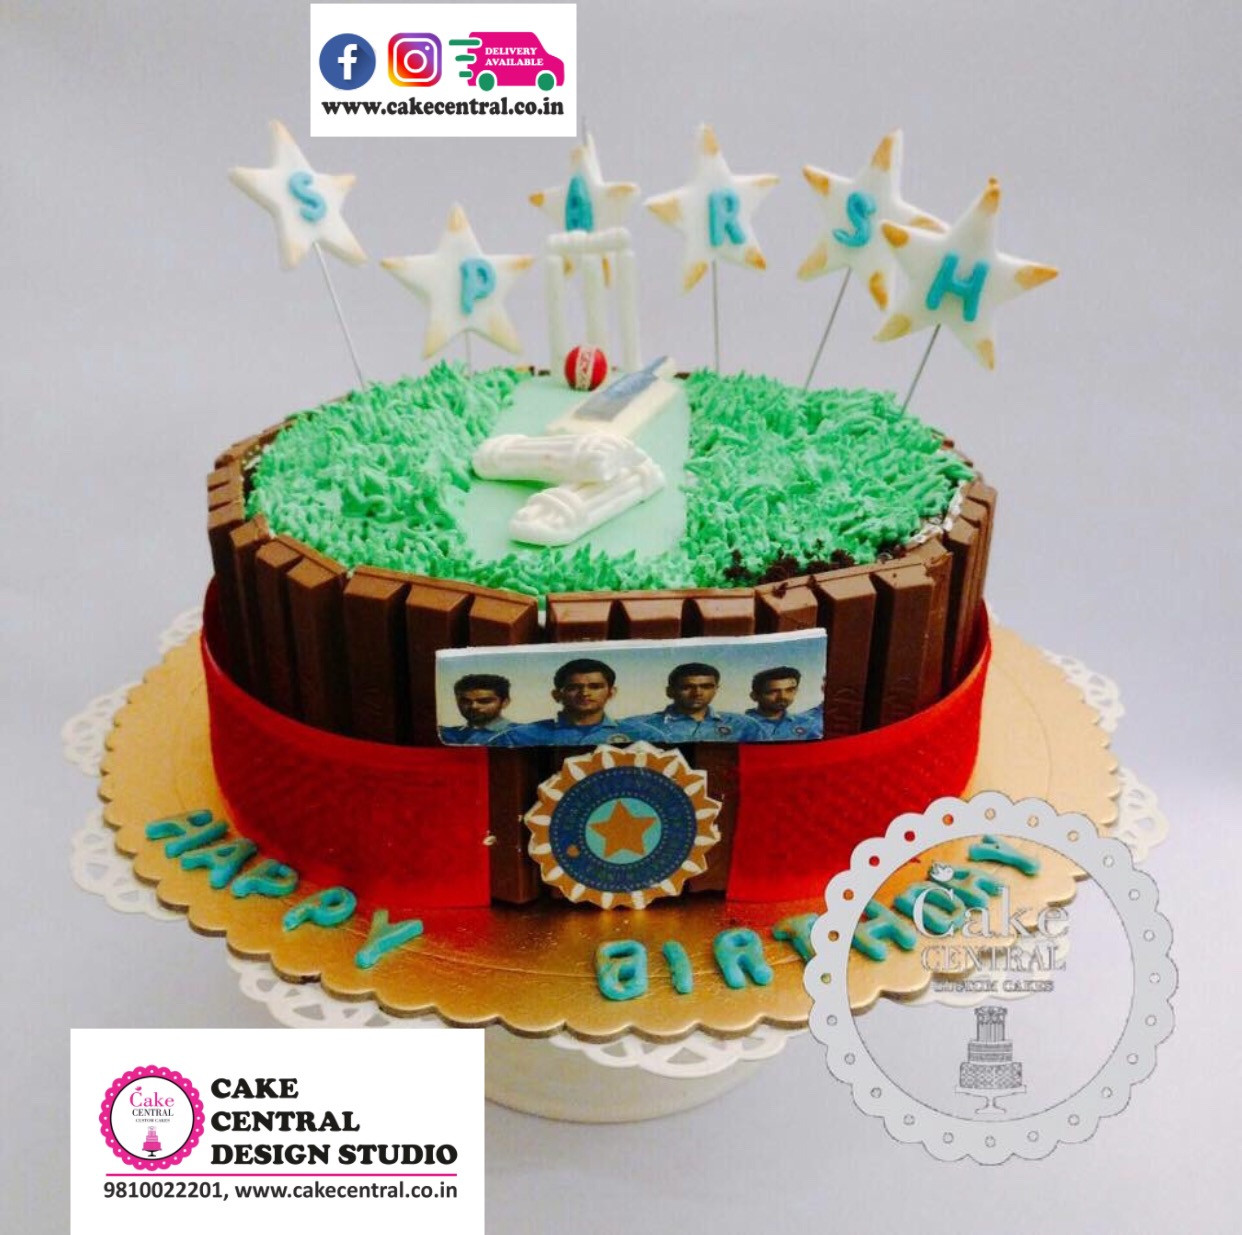 Cricket Pitch Cake Theme Cakes Near Me Online With Delivery Central